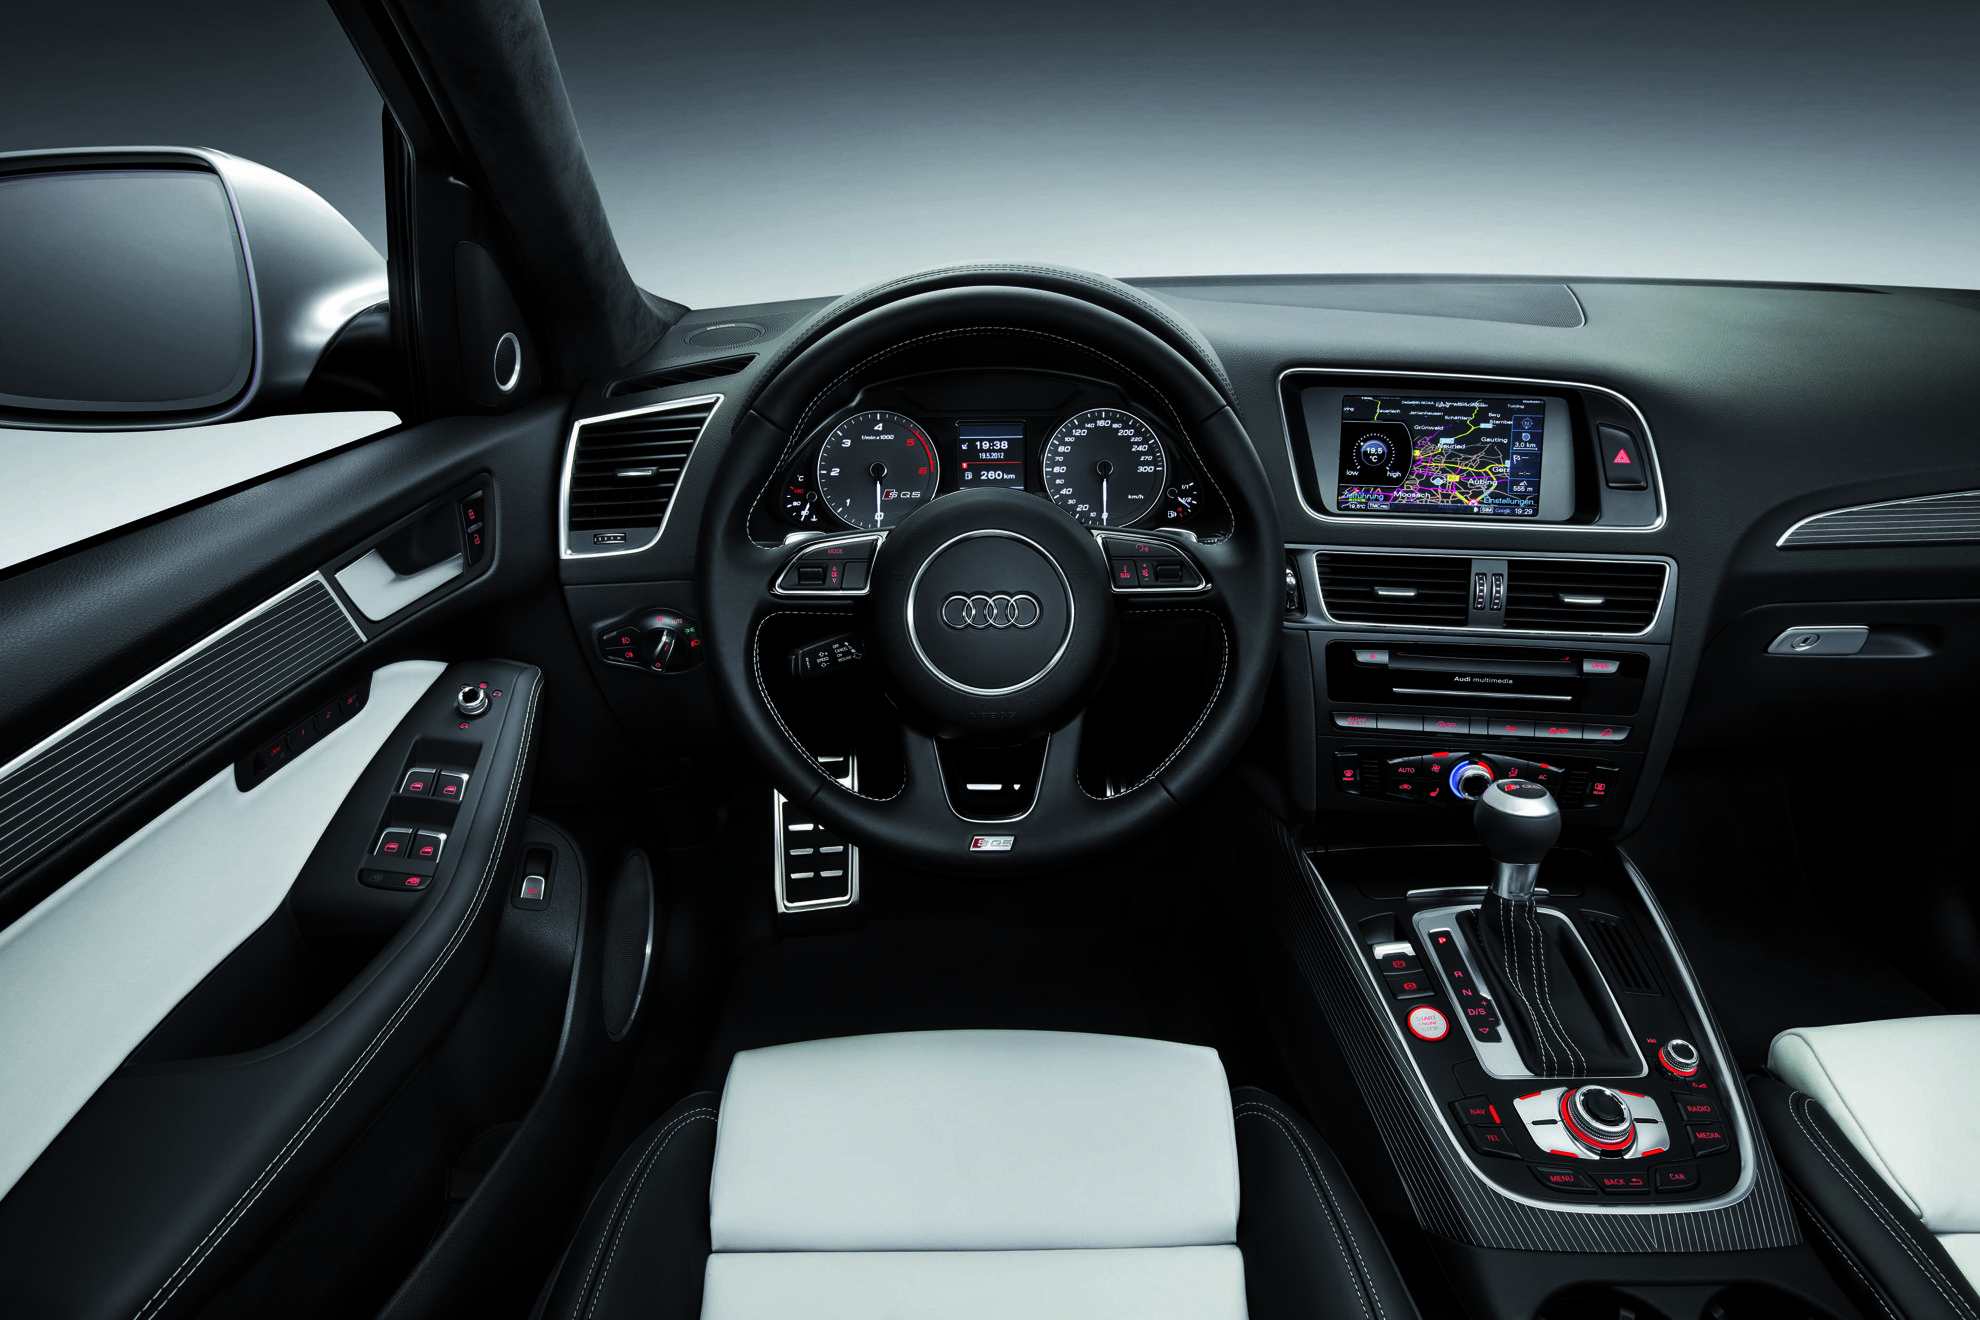 Audi S Q5 Interior - 3D Car Shows